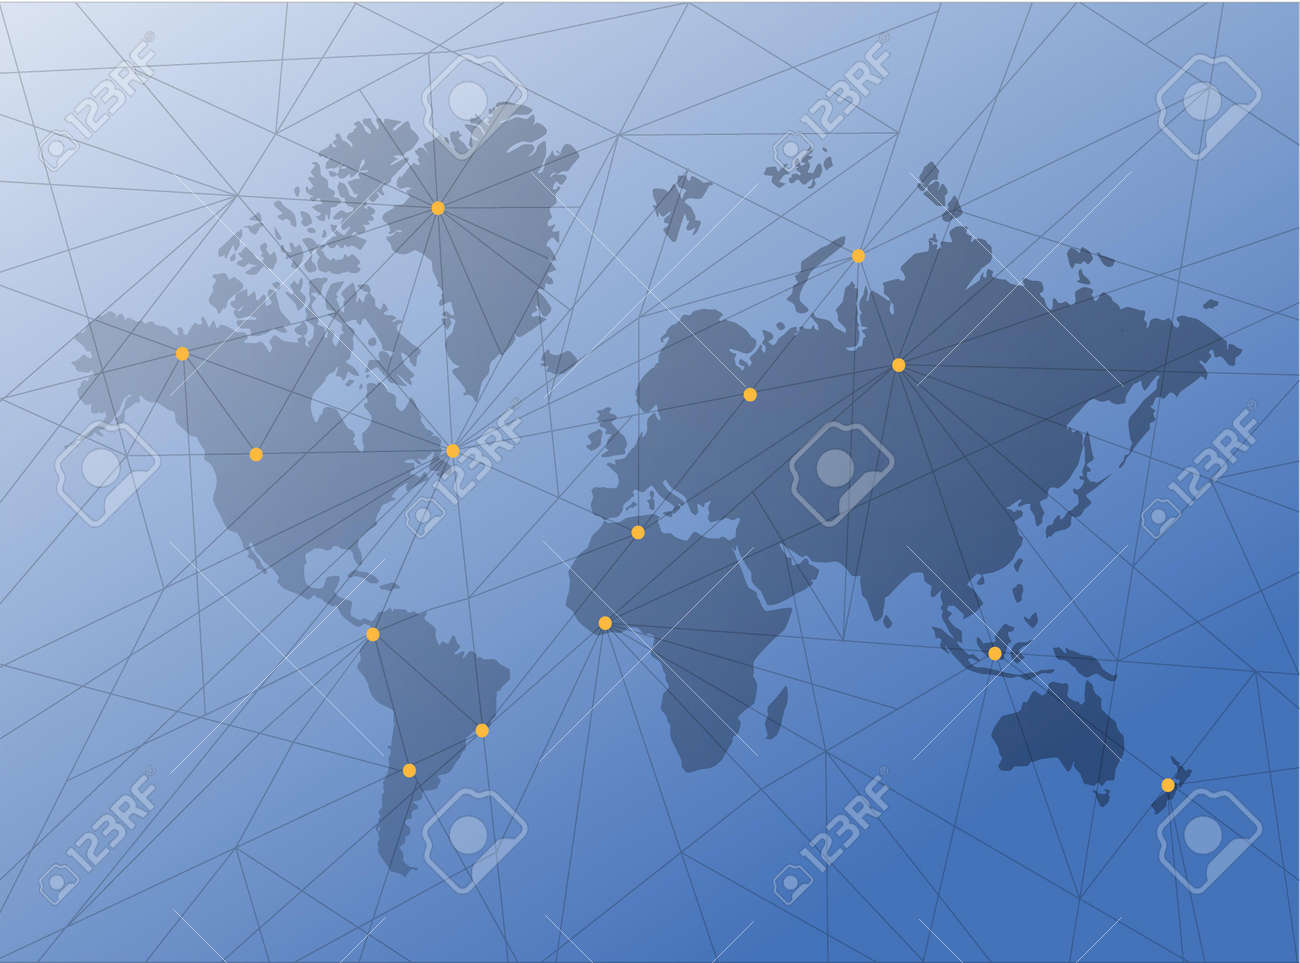 World map technology network diagram link blue illustration vector world map technology network diagram link blue illustration background gumiabroncs Image collections